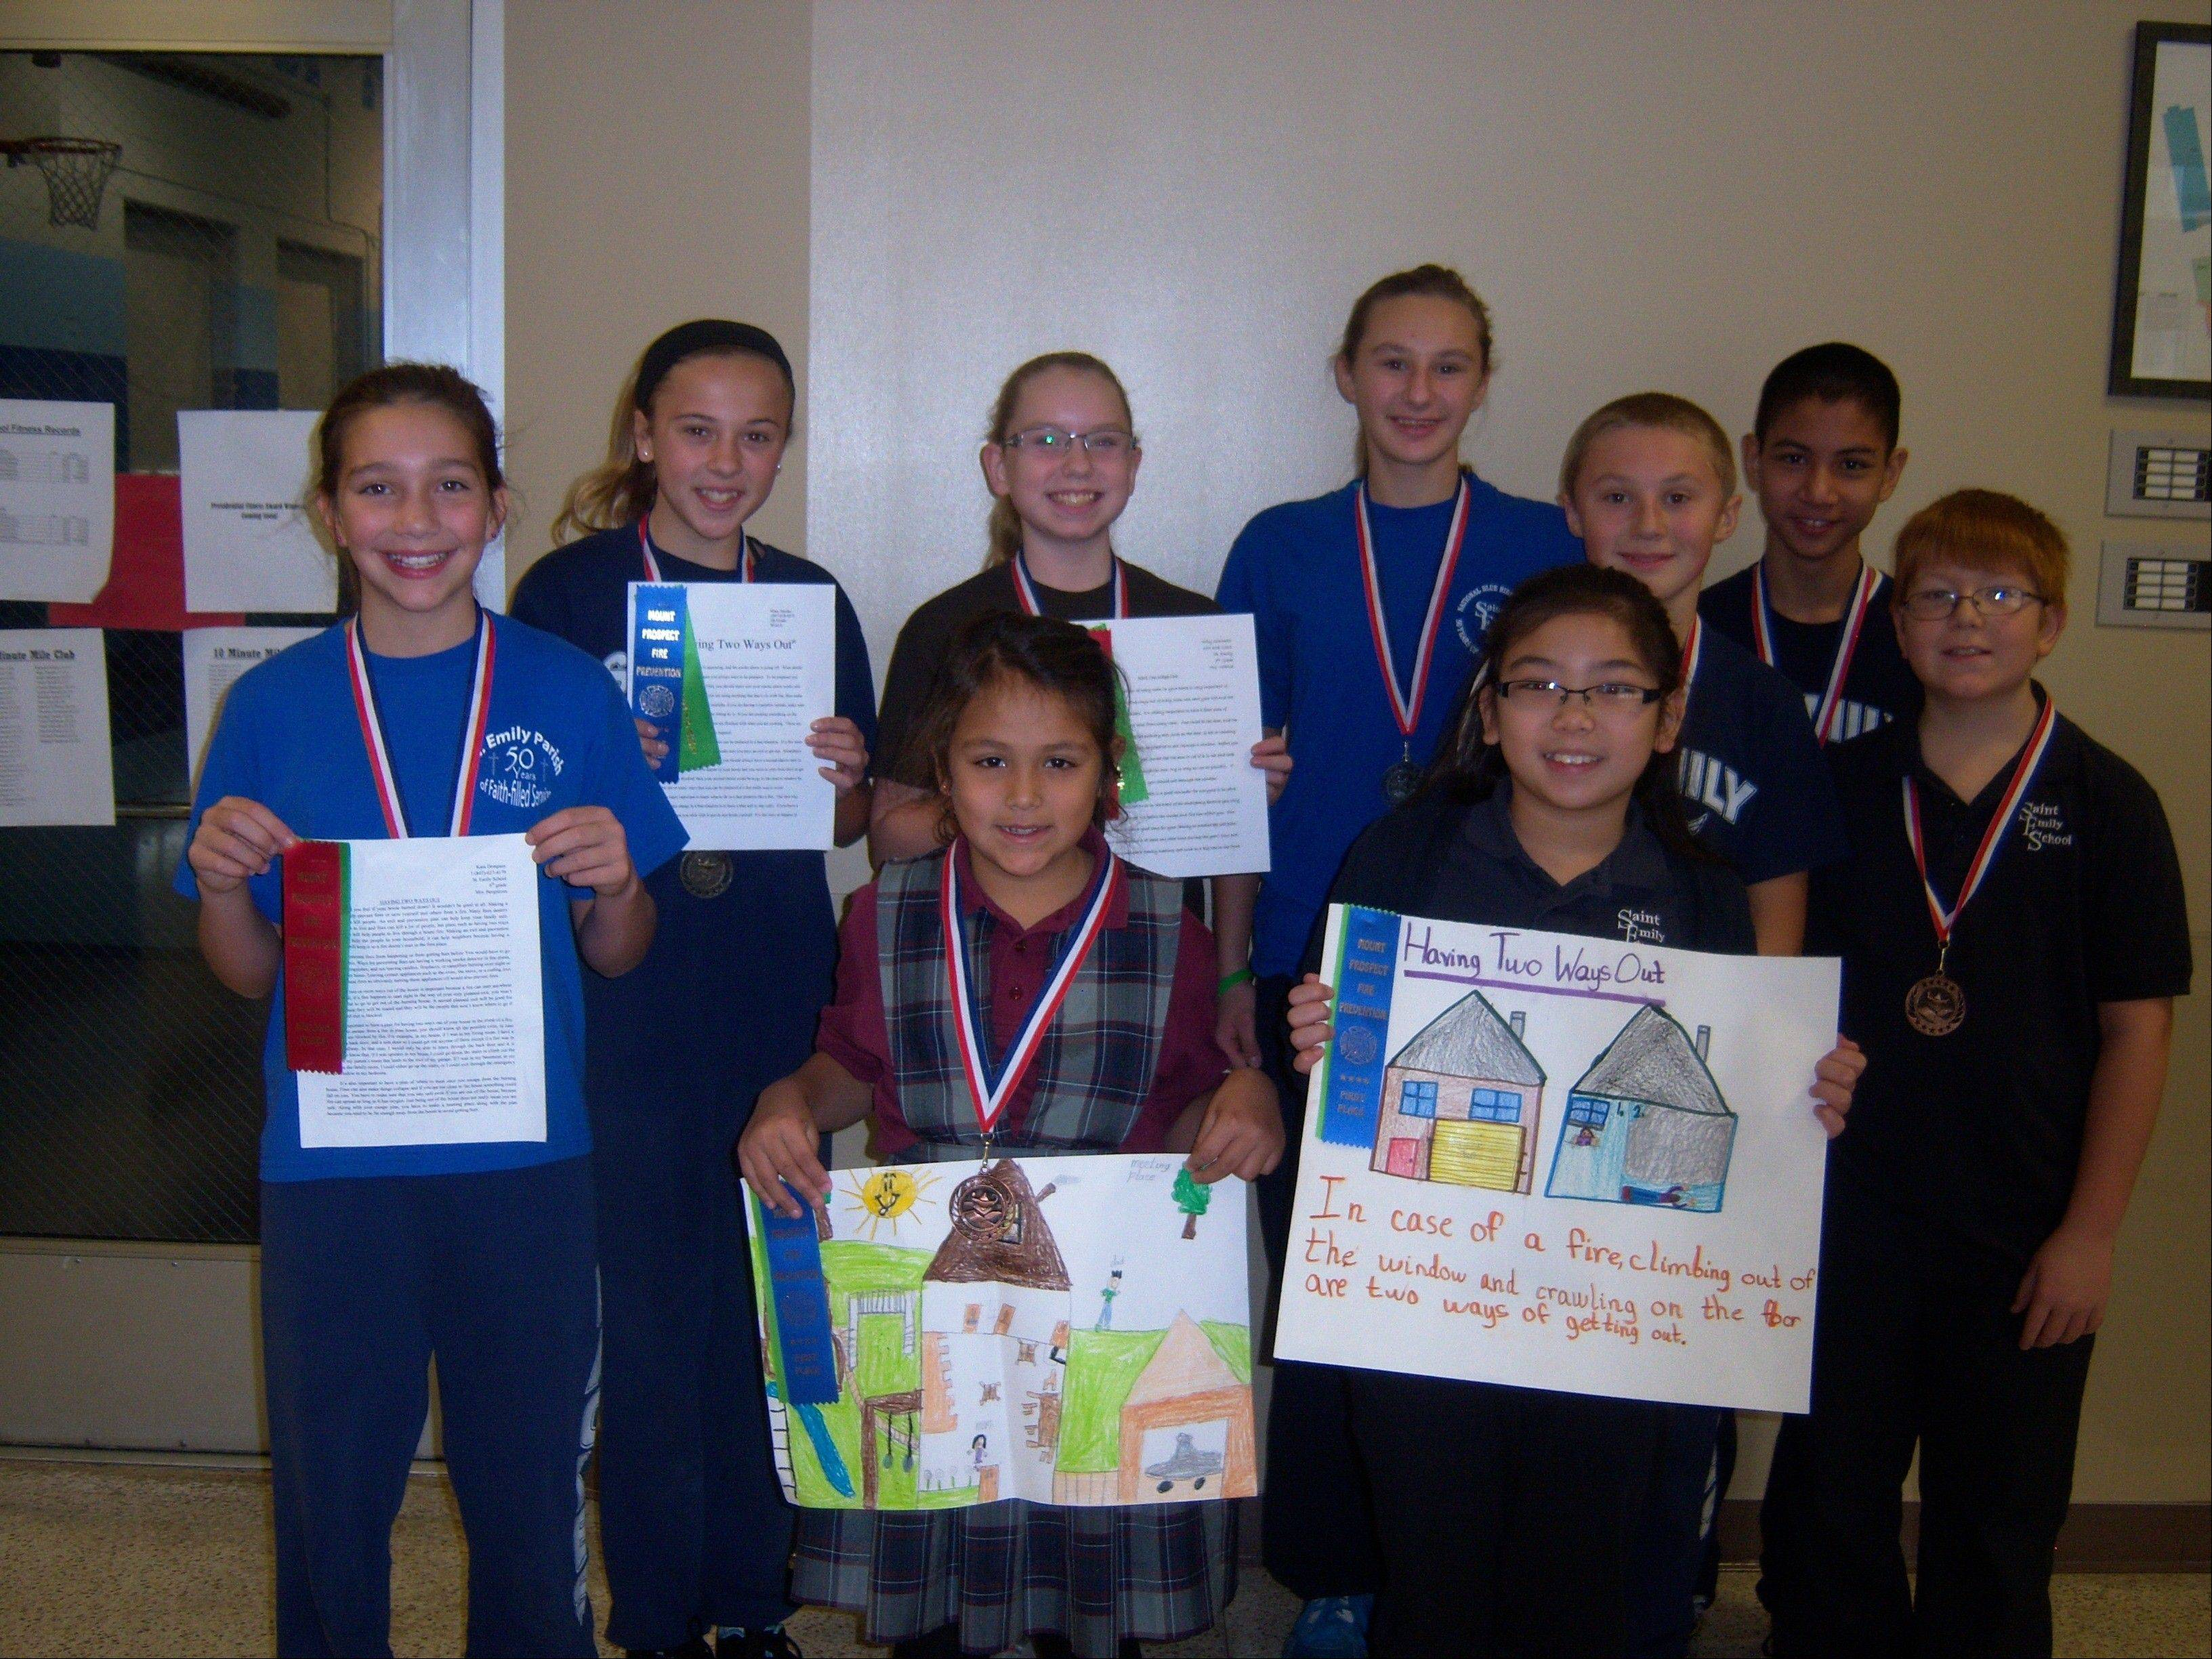 The 2012 Mount Prospect Fire Department Poster/Essay Contest winners from St. Emily School, Mount Prospect.